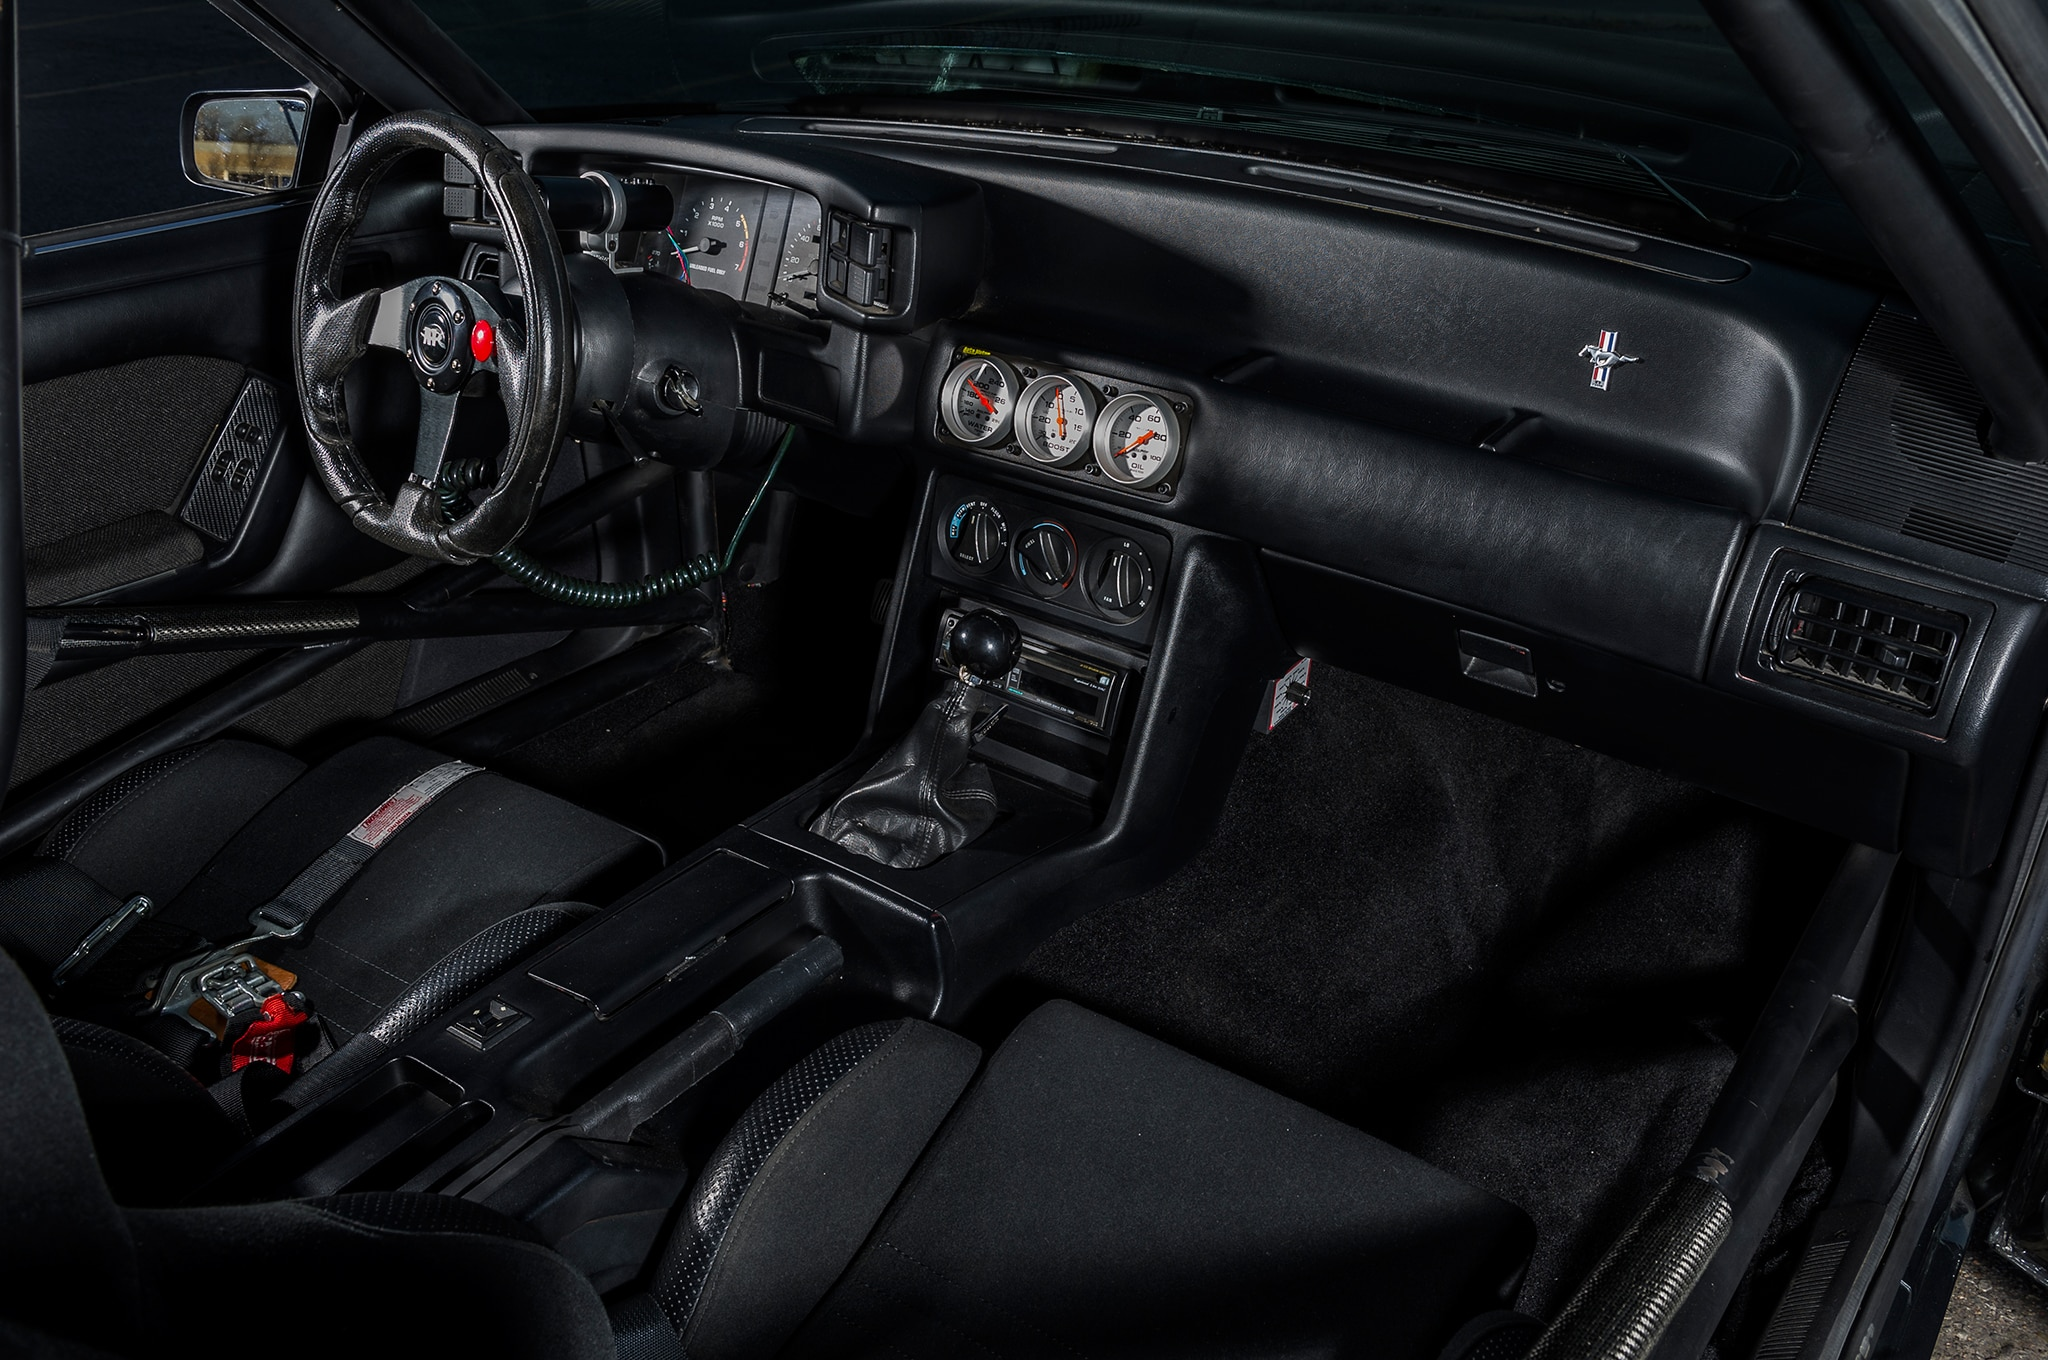 1989 Mustang Coupe Quarter Panel